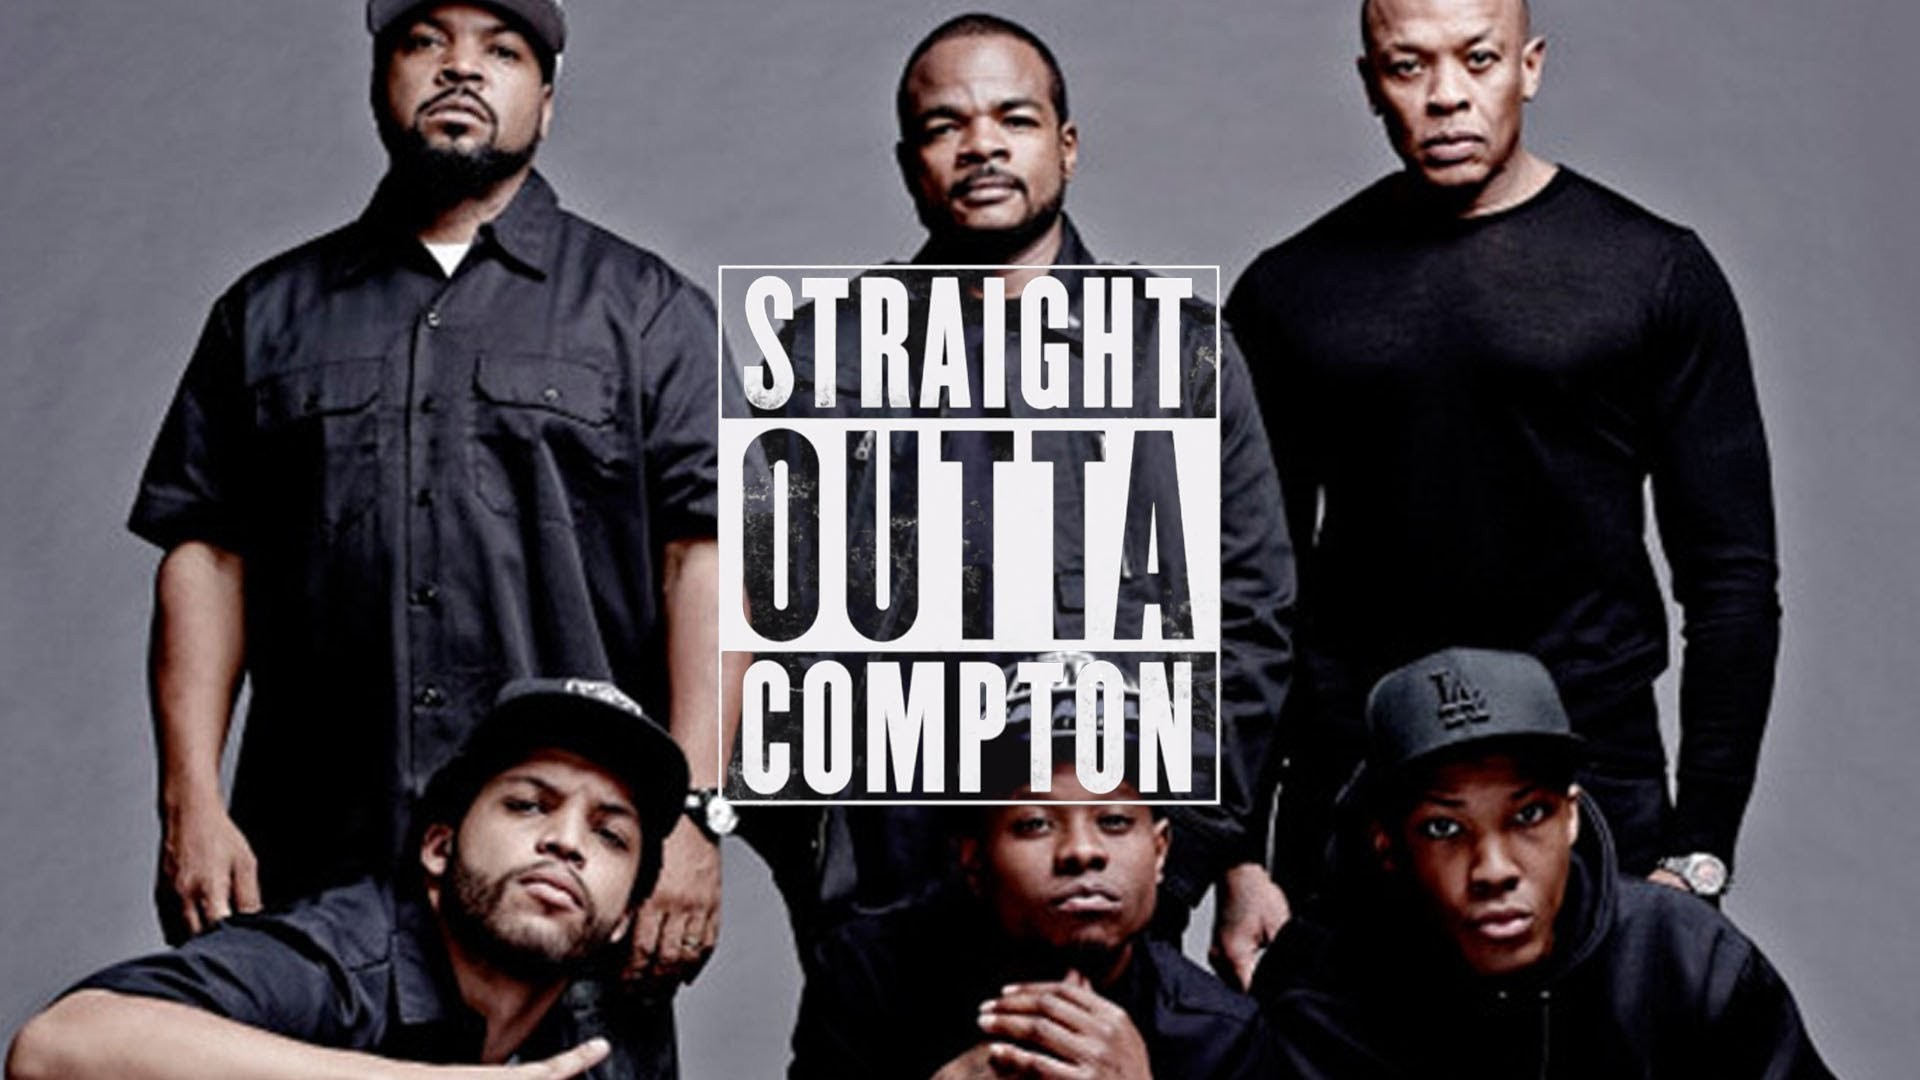 1920x1080  STRAIGHT OUTTA COMPTON rap rapper hip hop gangsta nwa biography  drama music 1soc poster wallpaper